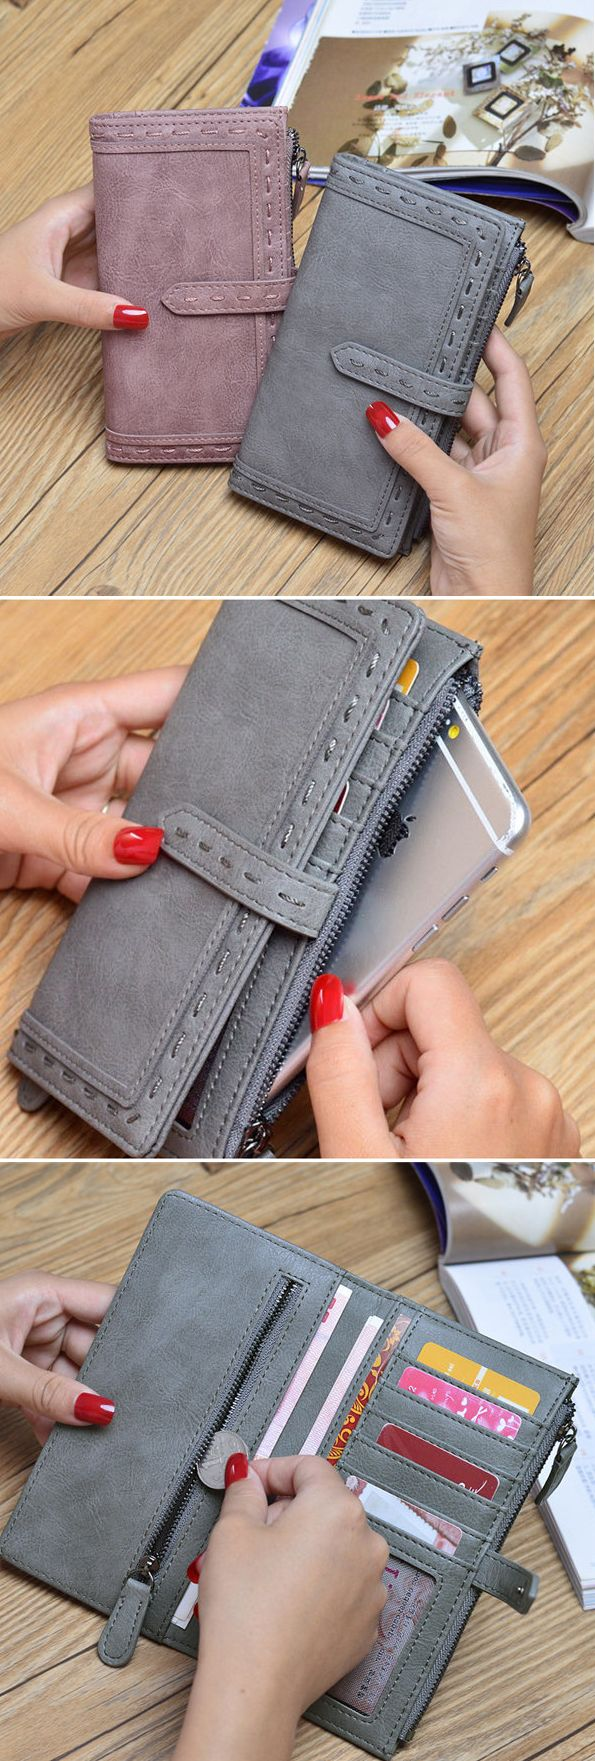 US$14.56 Elegant Stylish Long Wallet Card Holder Hasp Purse For Women